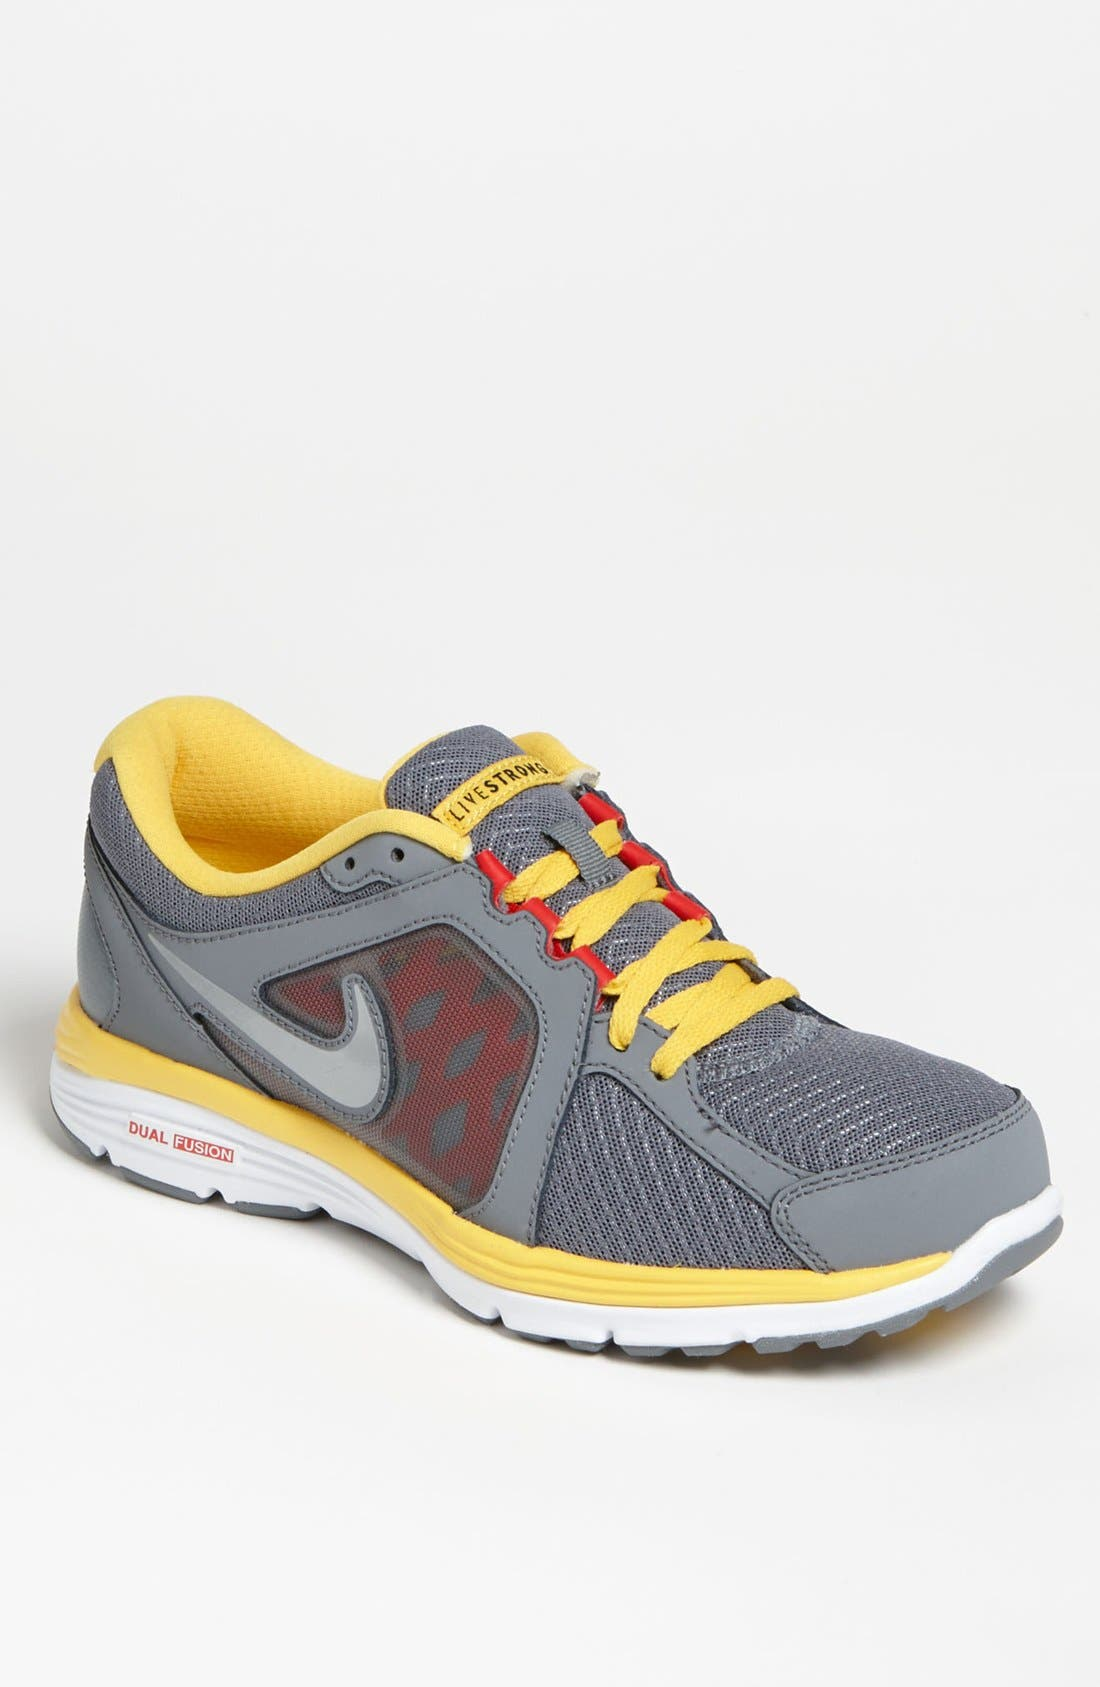 Alternate Image 1 Selected - Nike 'Dual Fusion Run Livestrong' Running Shoe (Men)